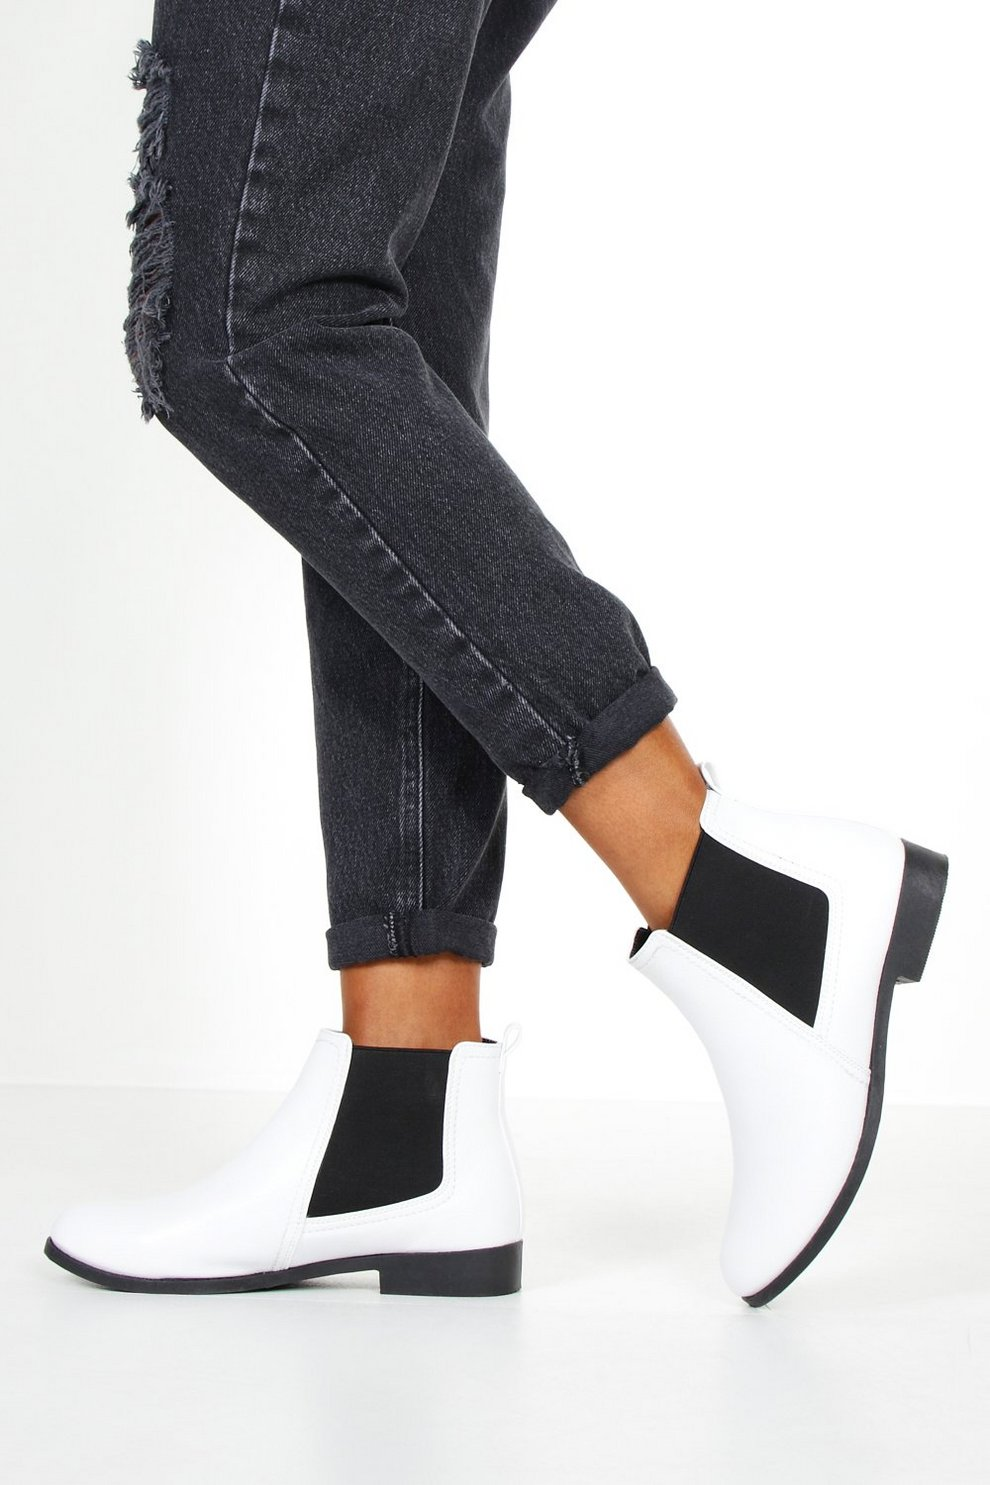 promo code 6120a 13546 Flache Chelsea-Boots mit schmaler Sohle   Boohoo